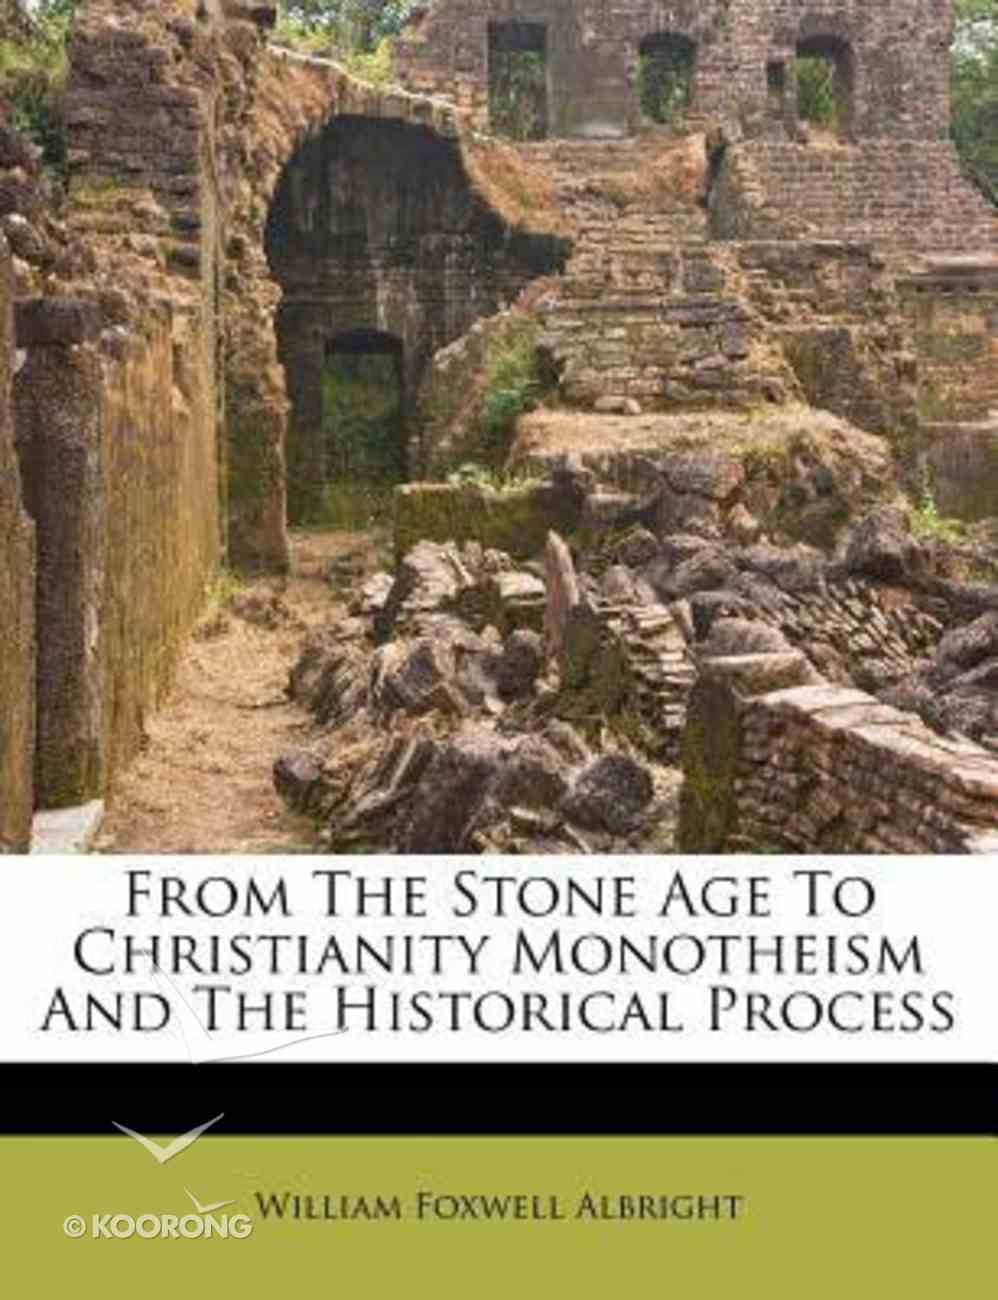 From the Stone Age to Christianity Monotheism and the Historical Process Paperback